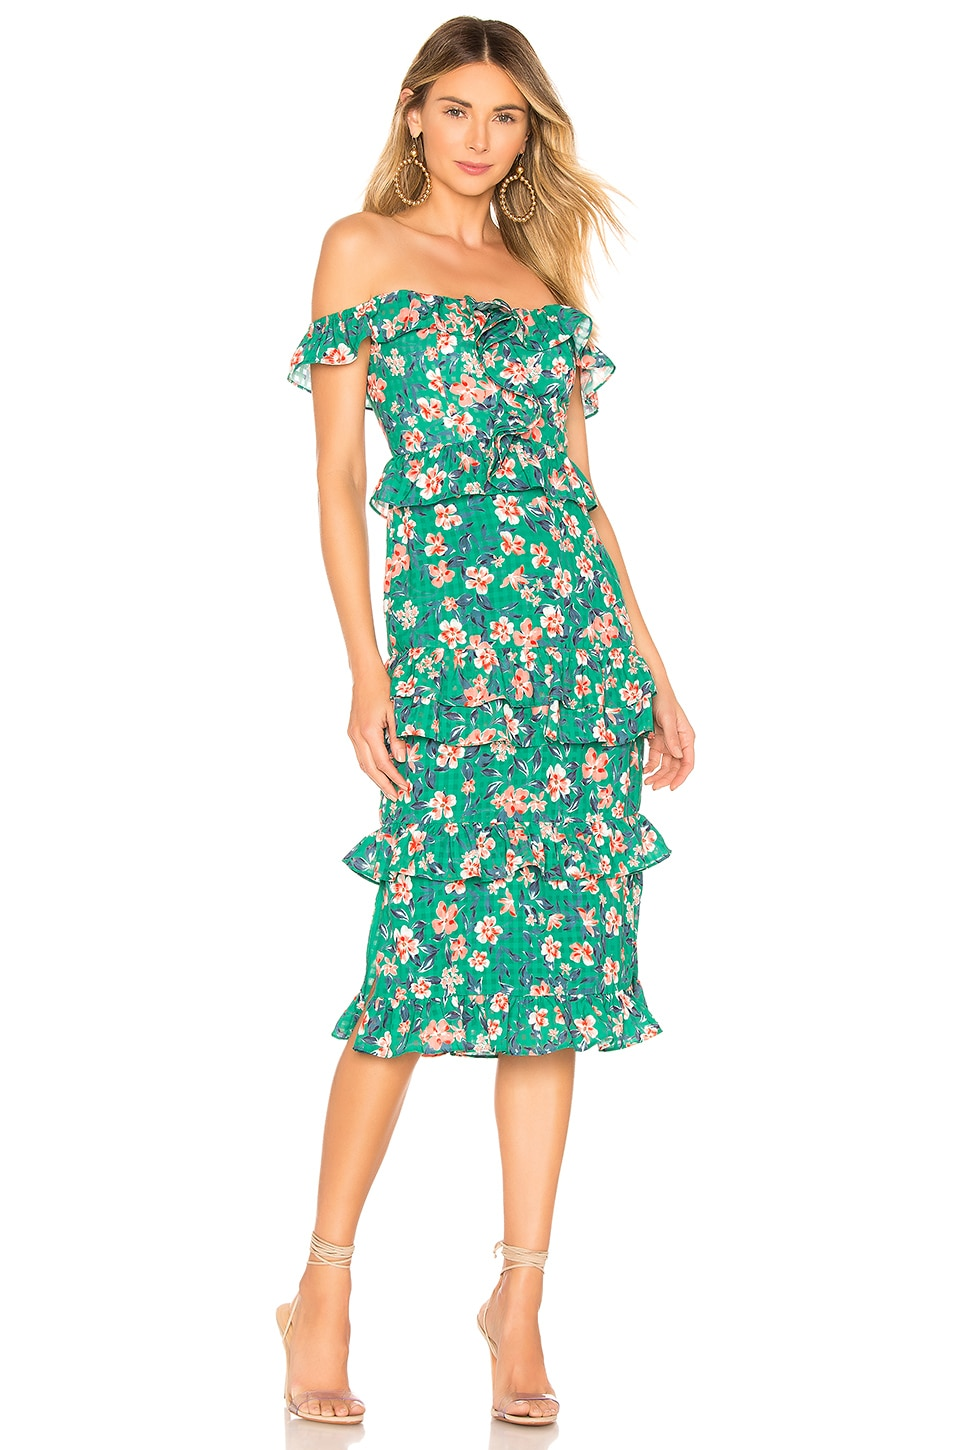 Tularosa Lily Dress in Kelly Green Floral